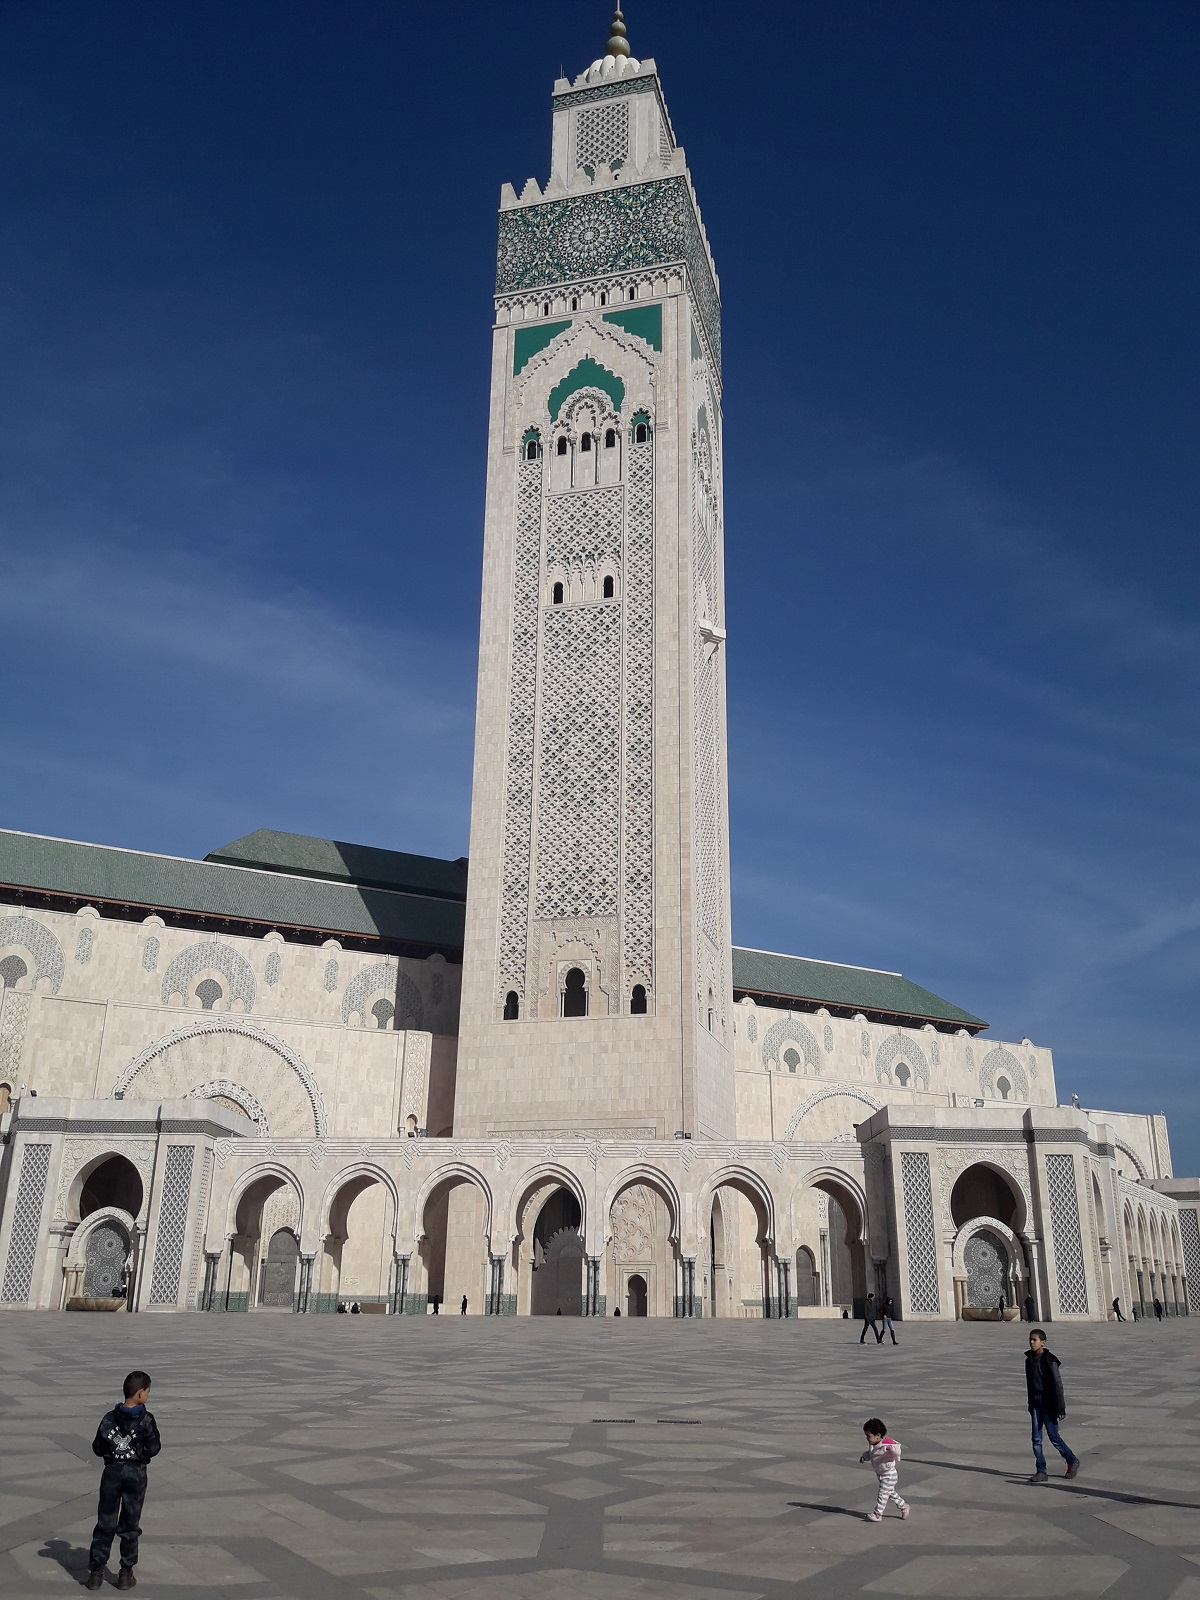 Masjid hassan 2 mosque casablanca big mosque in Morocco maroc best location to visit in Morocco